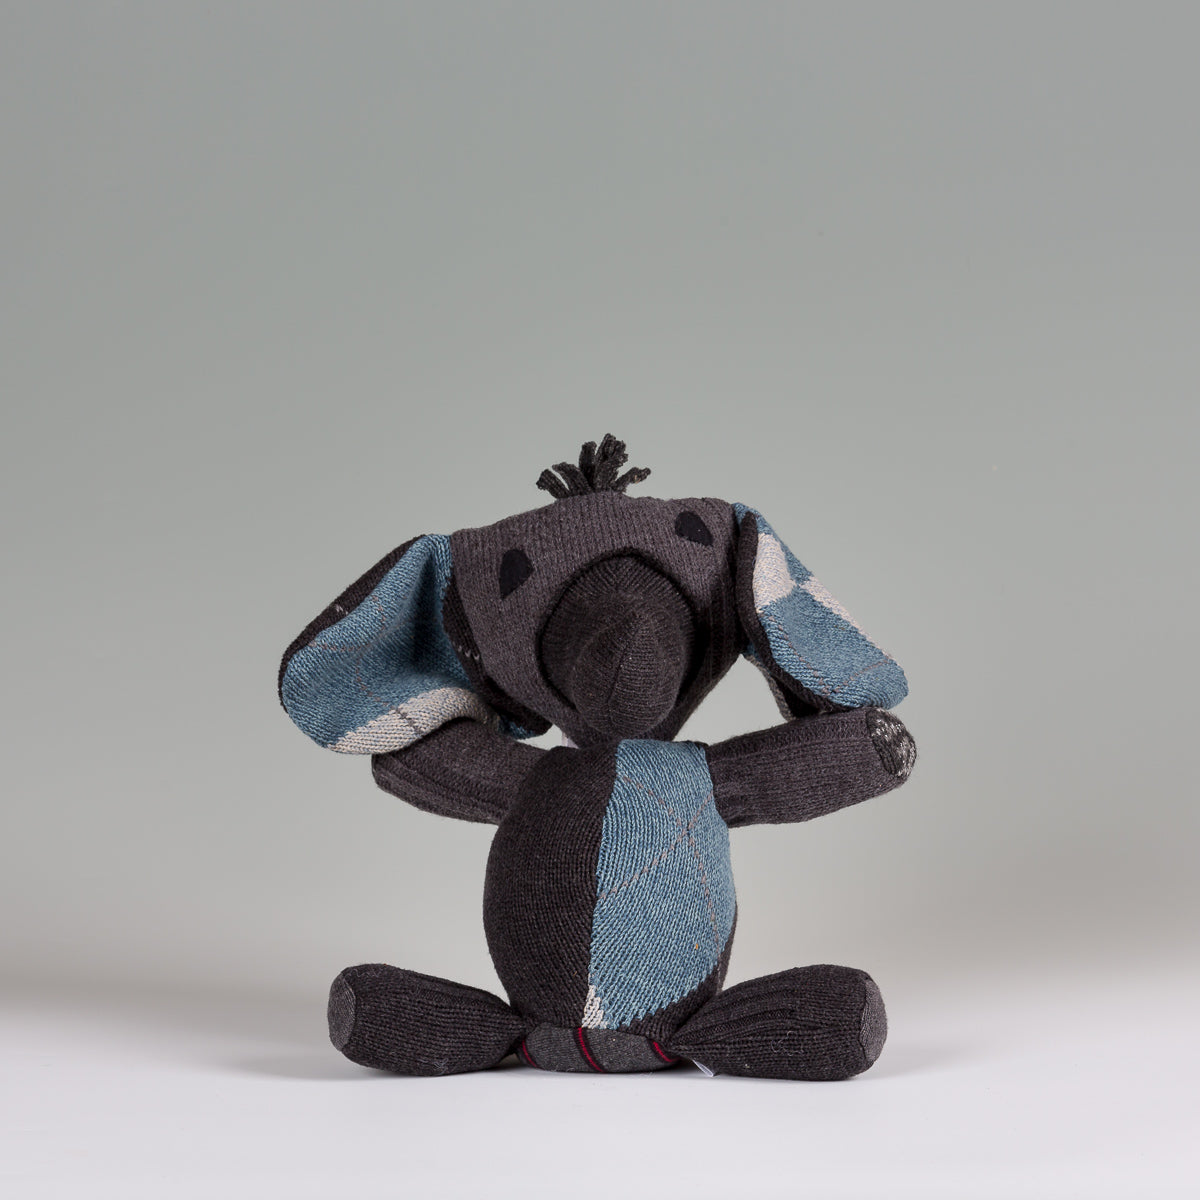 Ellie Fant The Elephant Stuffed Animal Reimaginary Friends